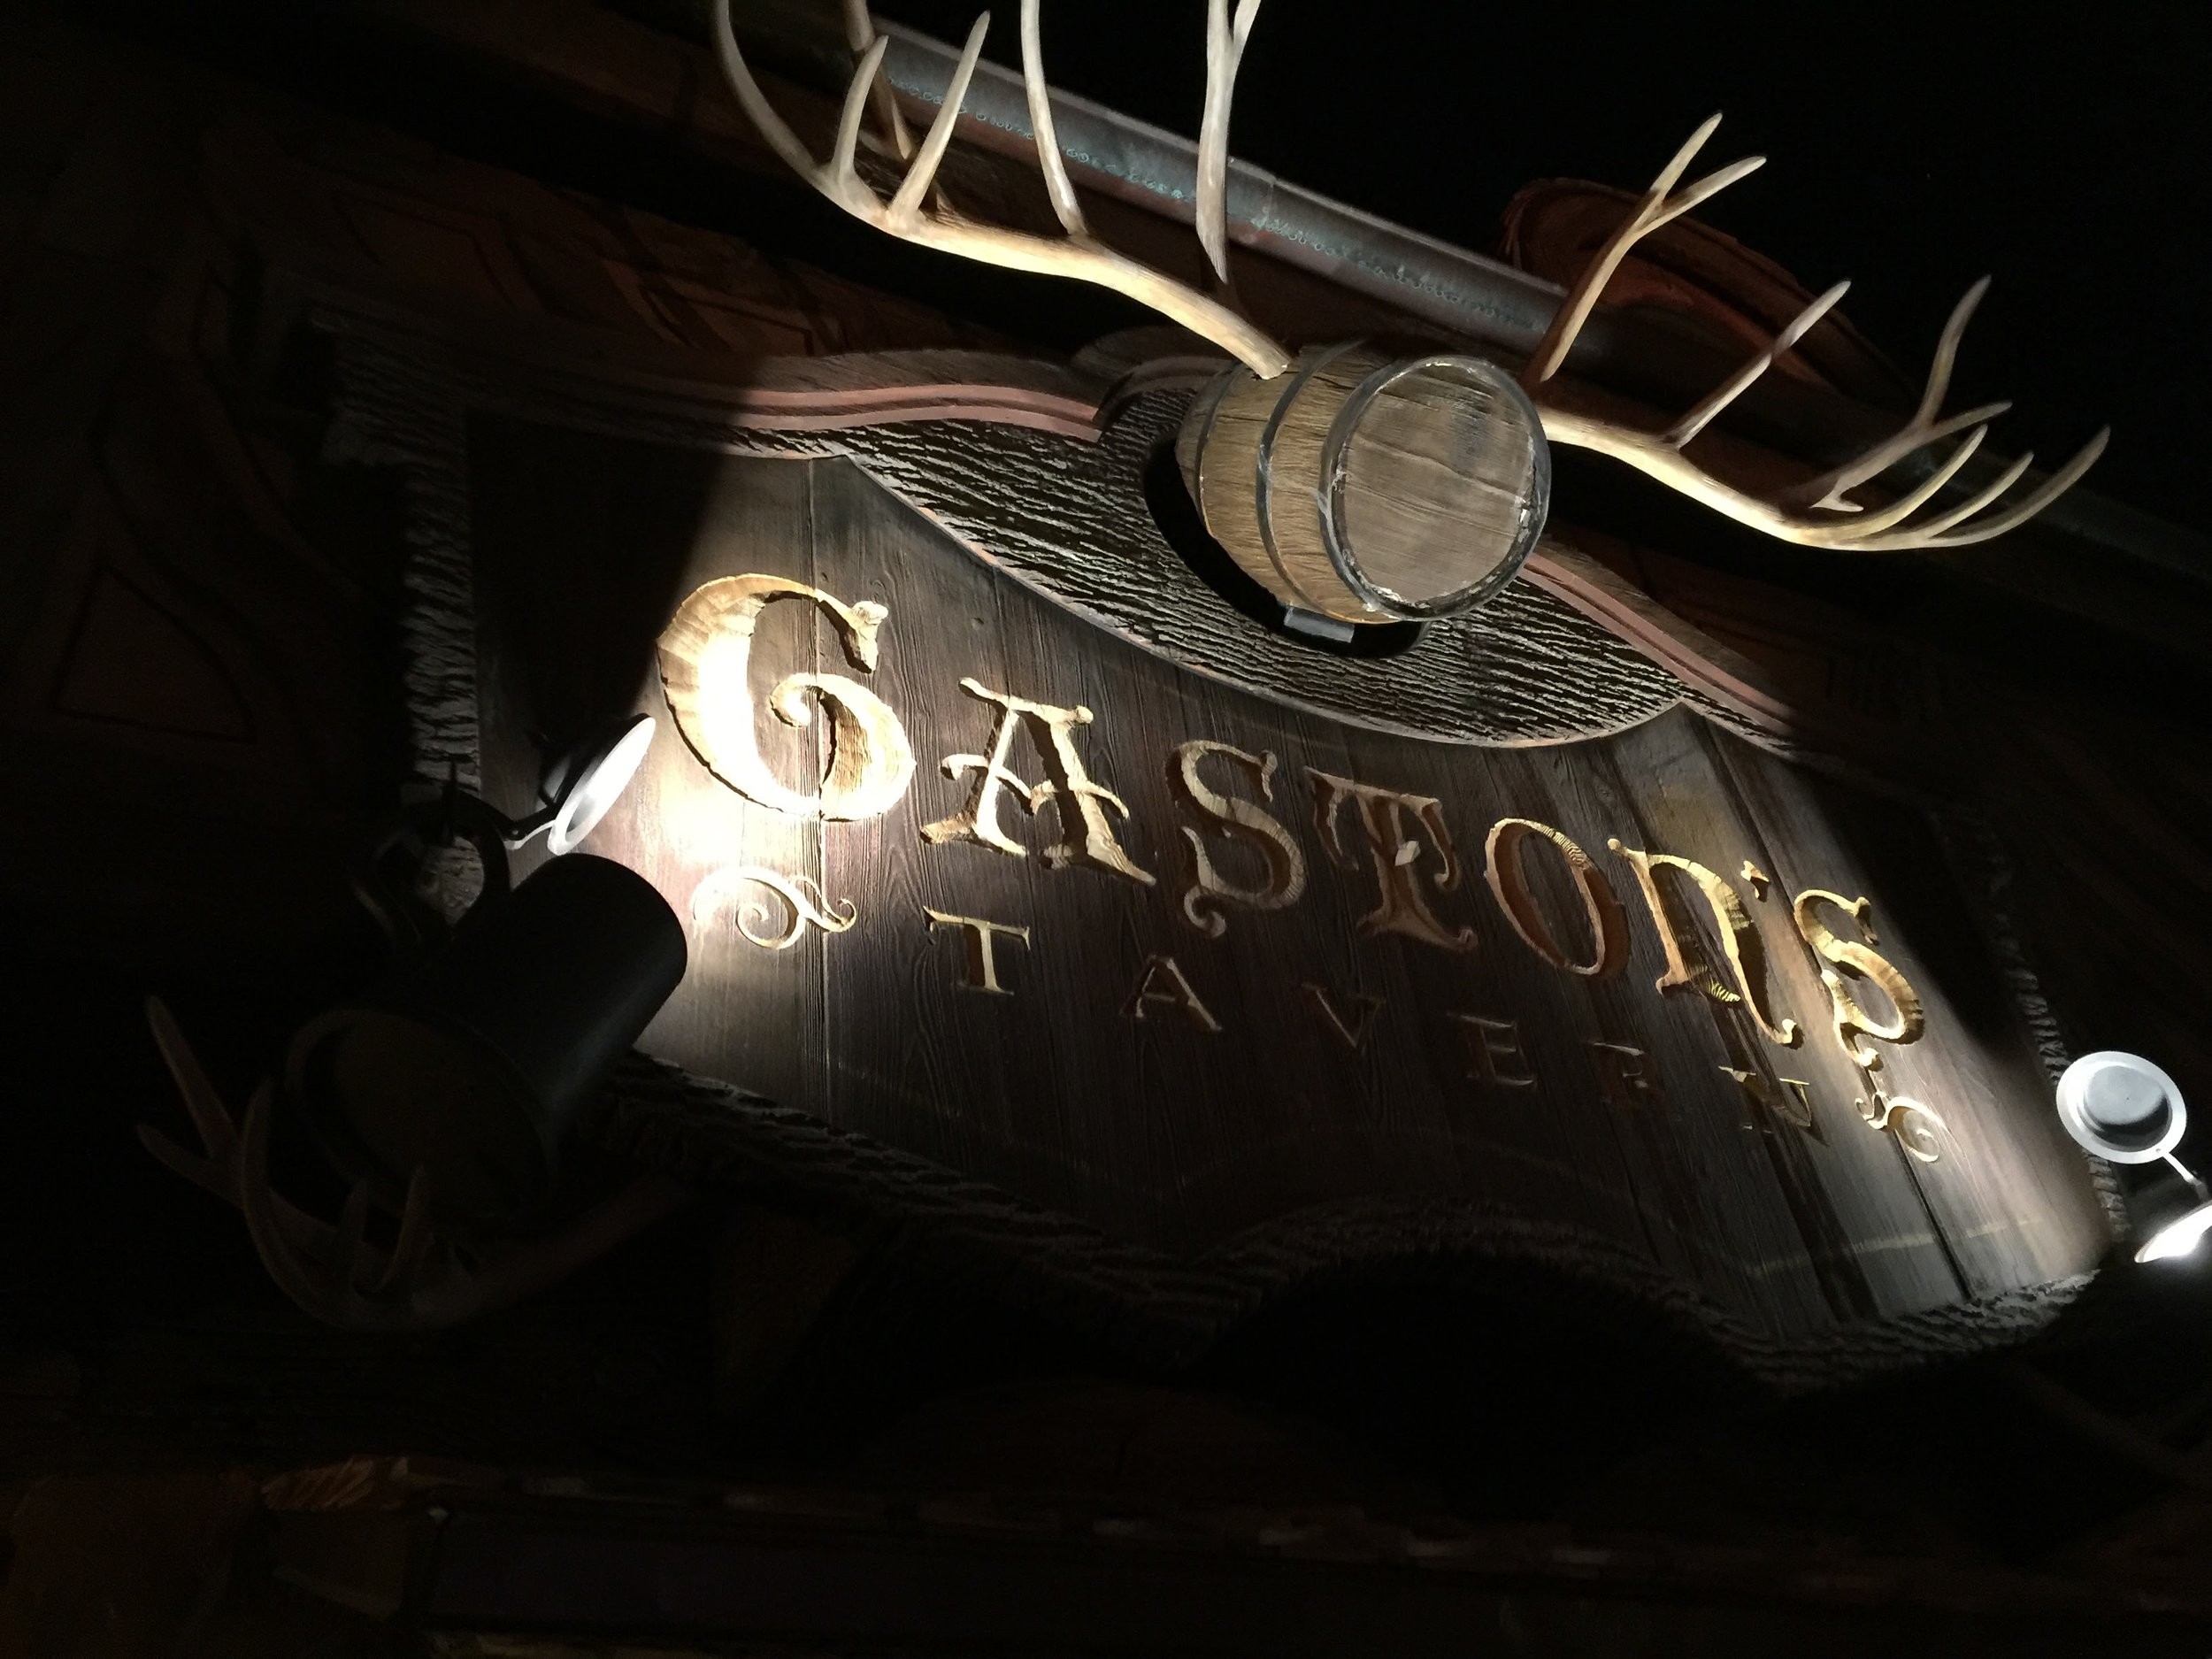 Gaston's Tavern is located in New Fantasyland in between Be Our Guest and Journey of the Little Mermaid.